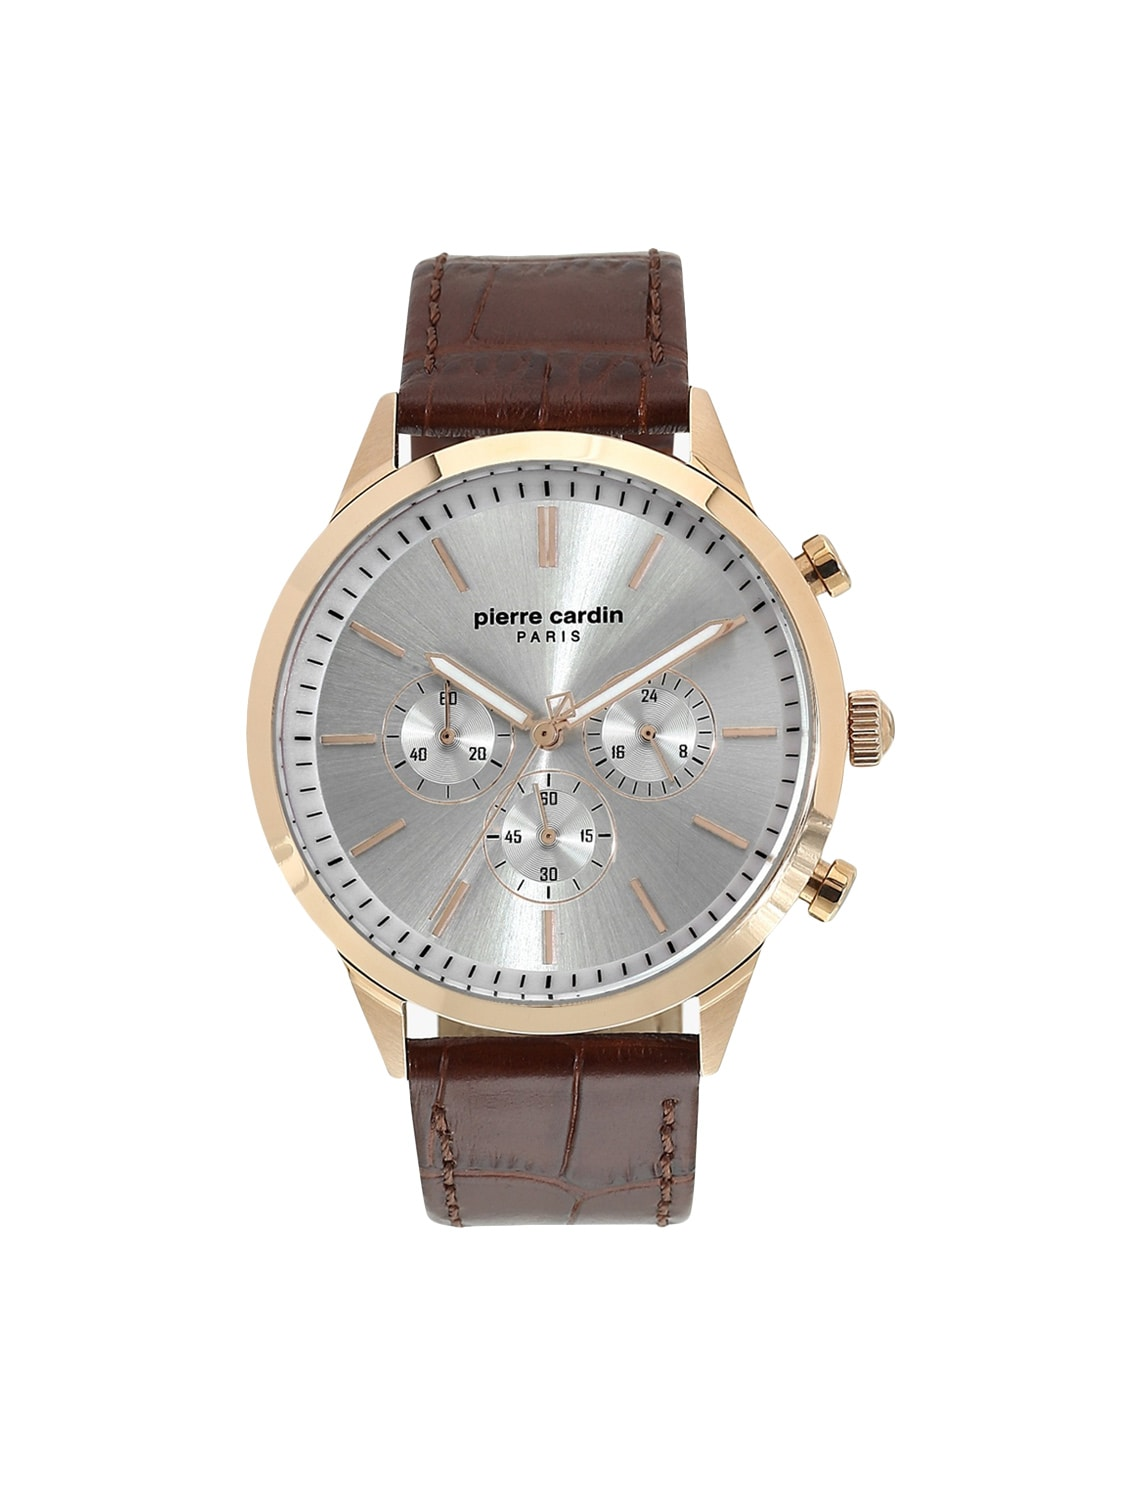 7469c85e5bd458 Buy Leather Strap Chronograph Watch (a.pc902361f04u) for Men from Pierre  Cardin for ₹6596 at 40% off